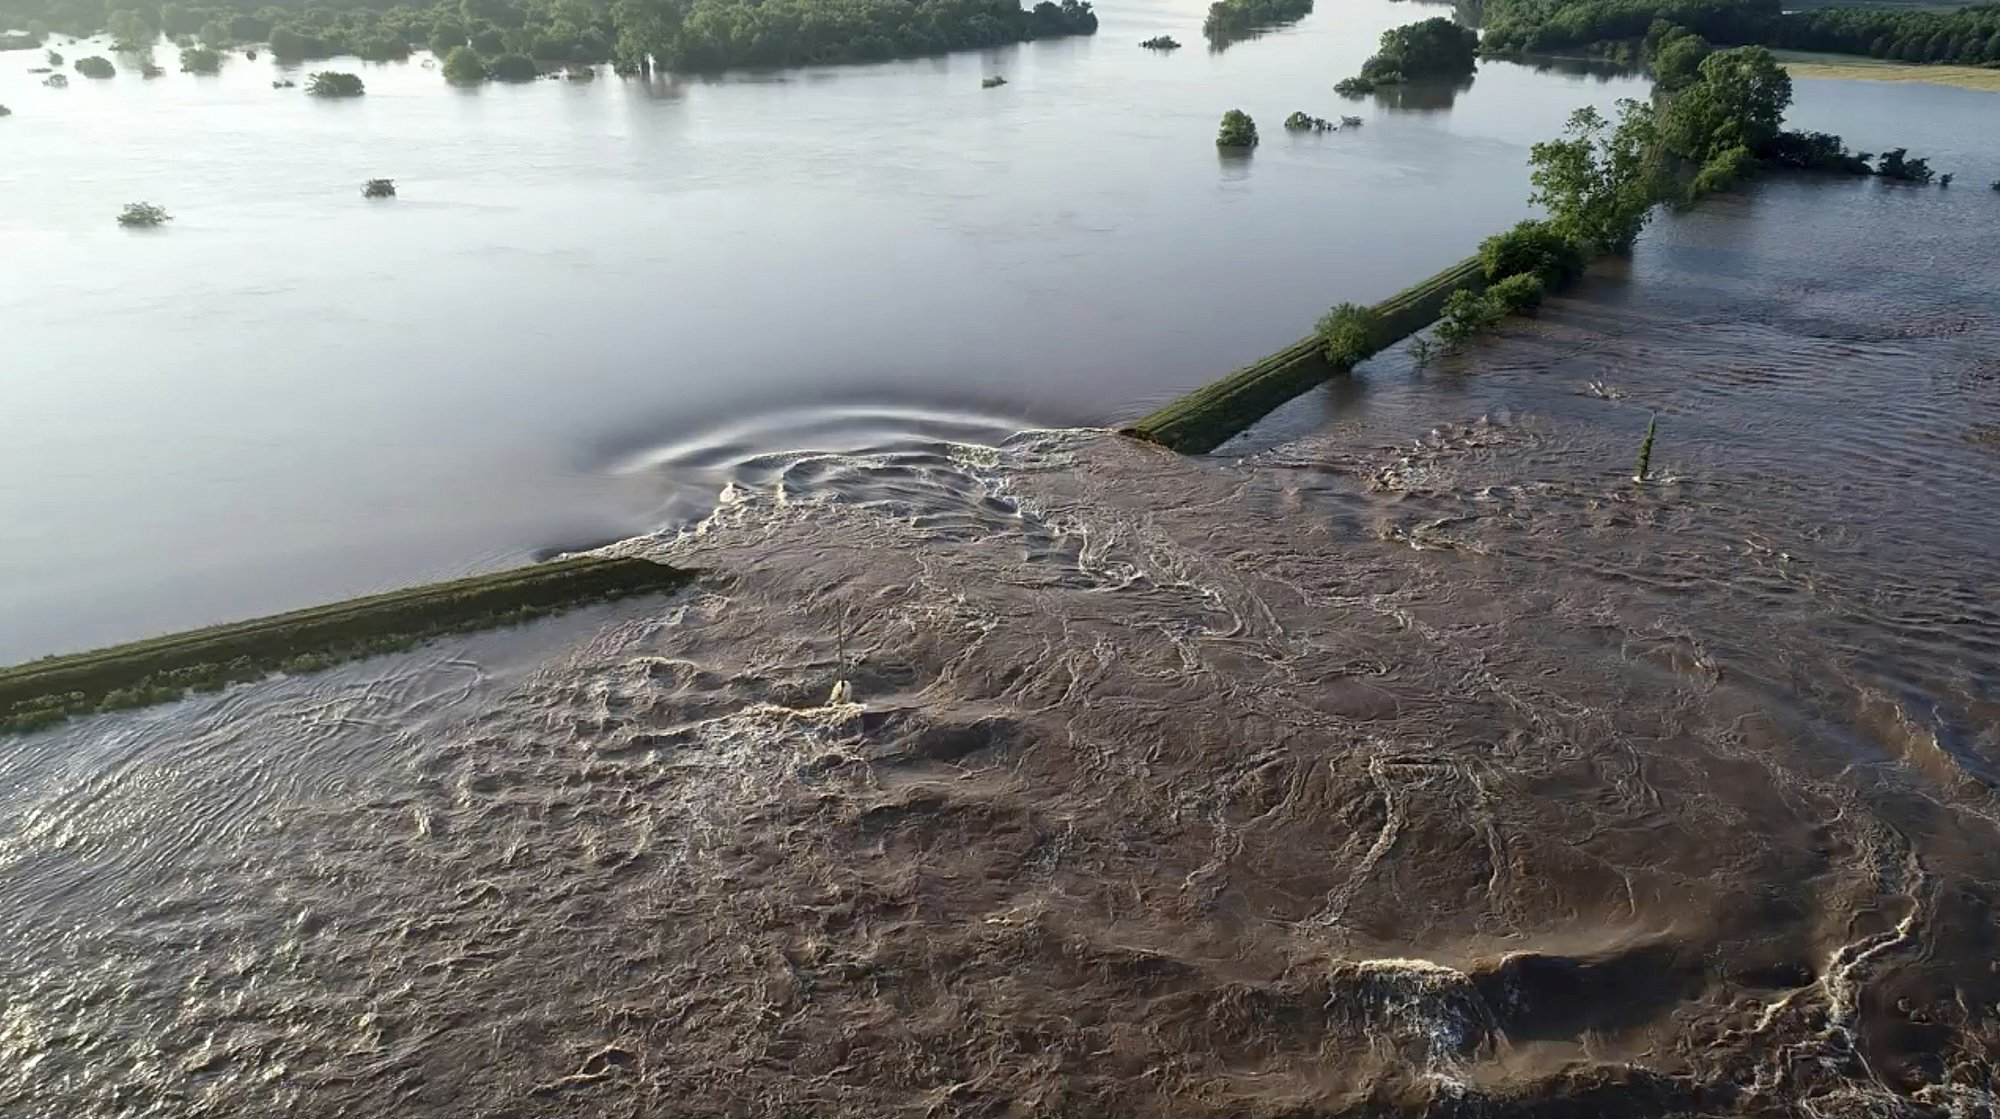 Levee breach at Dardanelle, about 60 miles northwest of Little Rock. (Yell County Sheriff's Department via AP)